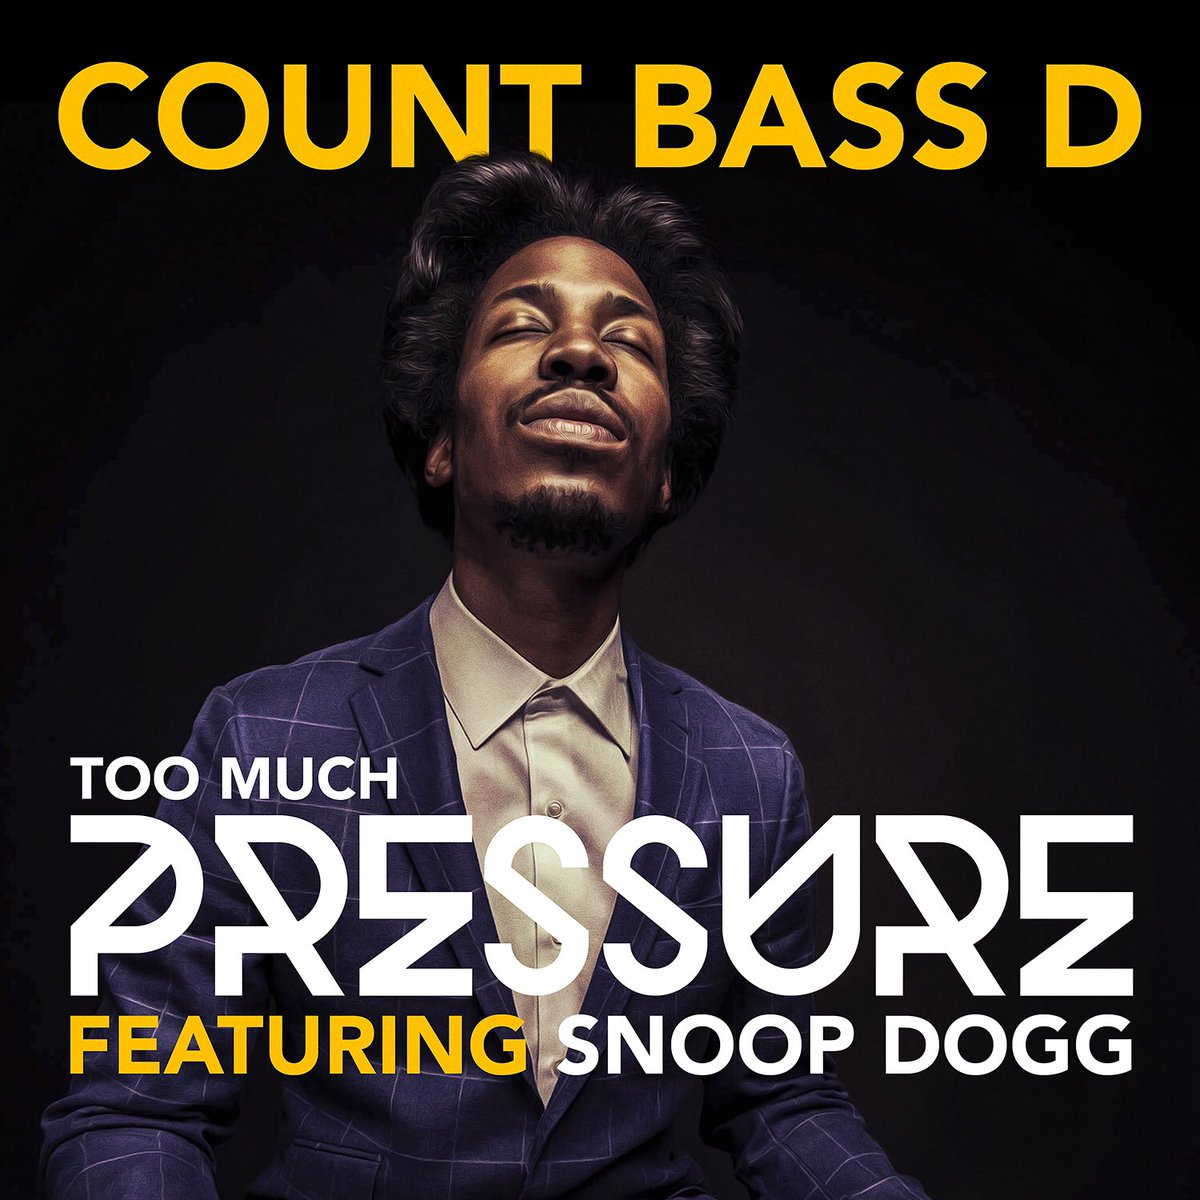 """#CountBassD feat. @SnoopDogg - """"Too Much Pressure"""" - Worldwide. Now. https://t.co/lHnVxCnOQy https://t.co/ahPuRDSpRj"""